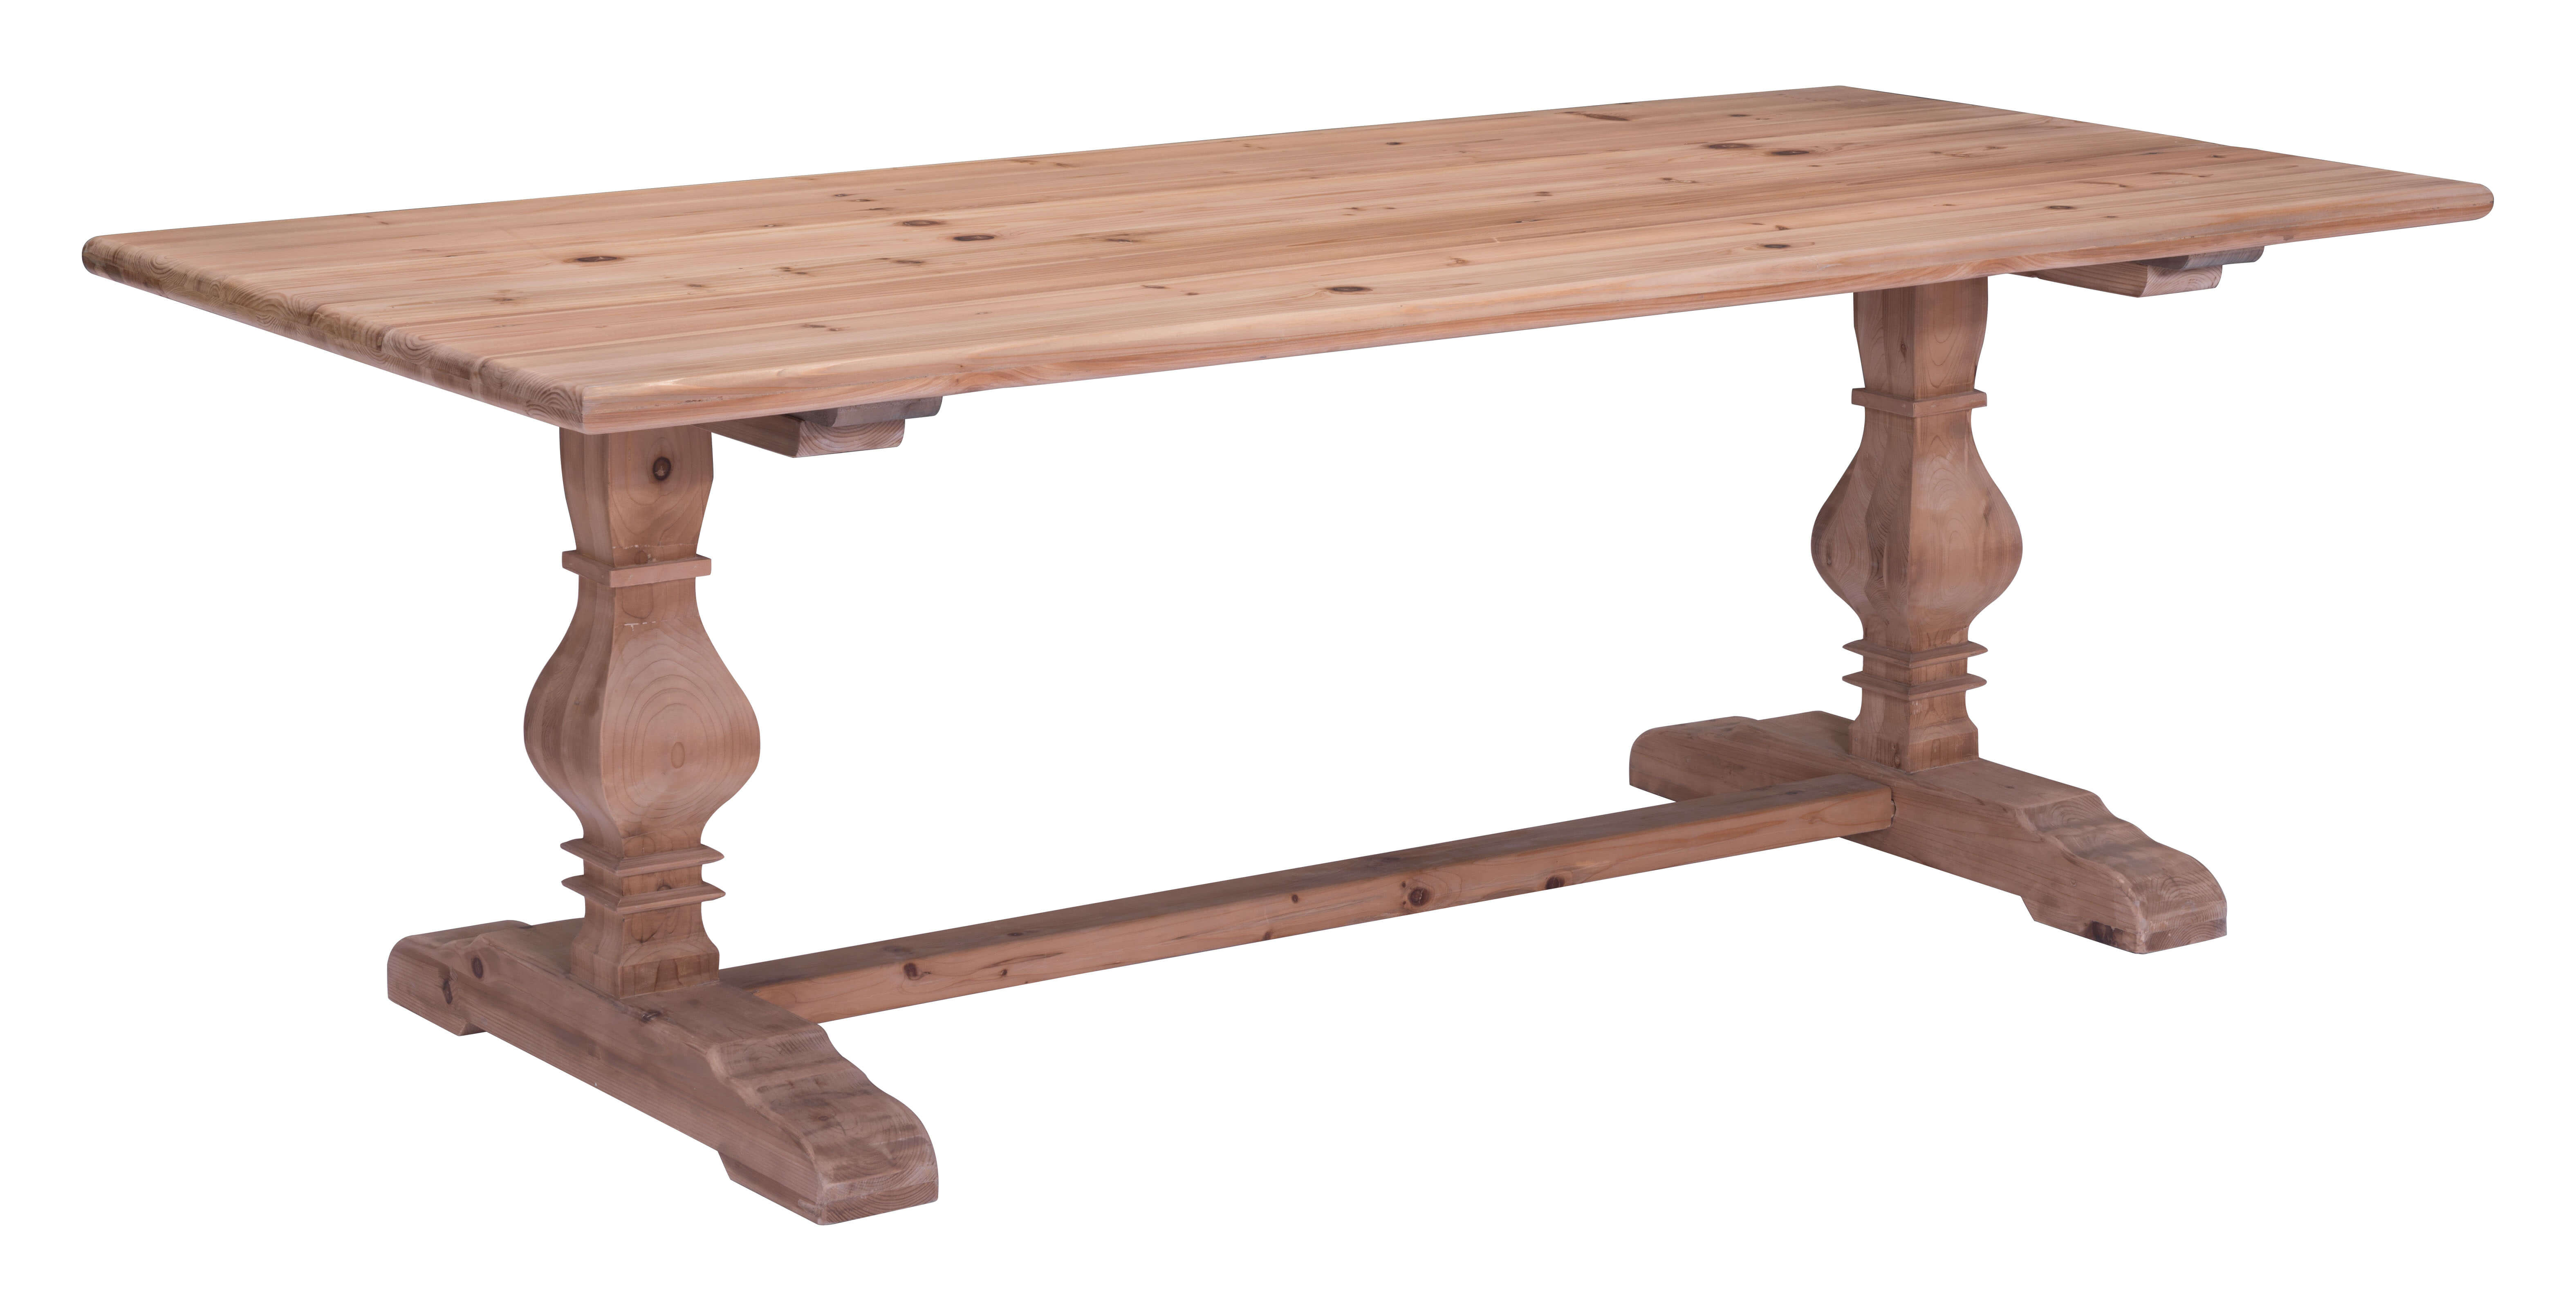 Zuo modern norfolk solid fir wood dining table natural for Solid wood dining table